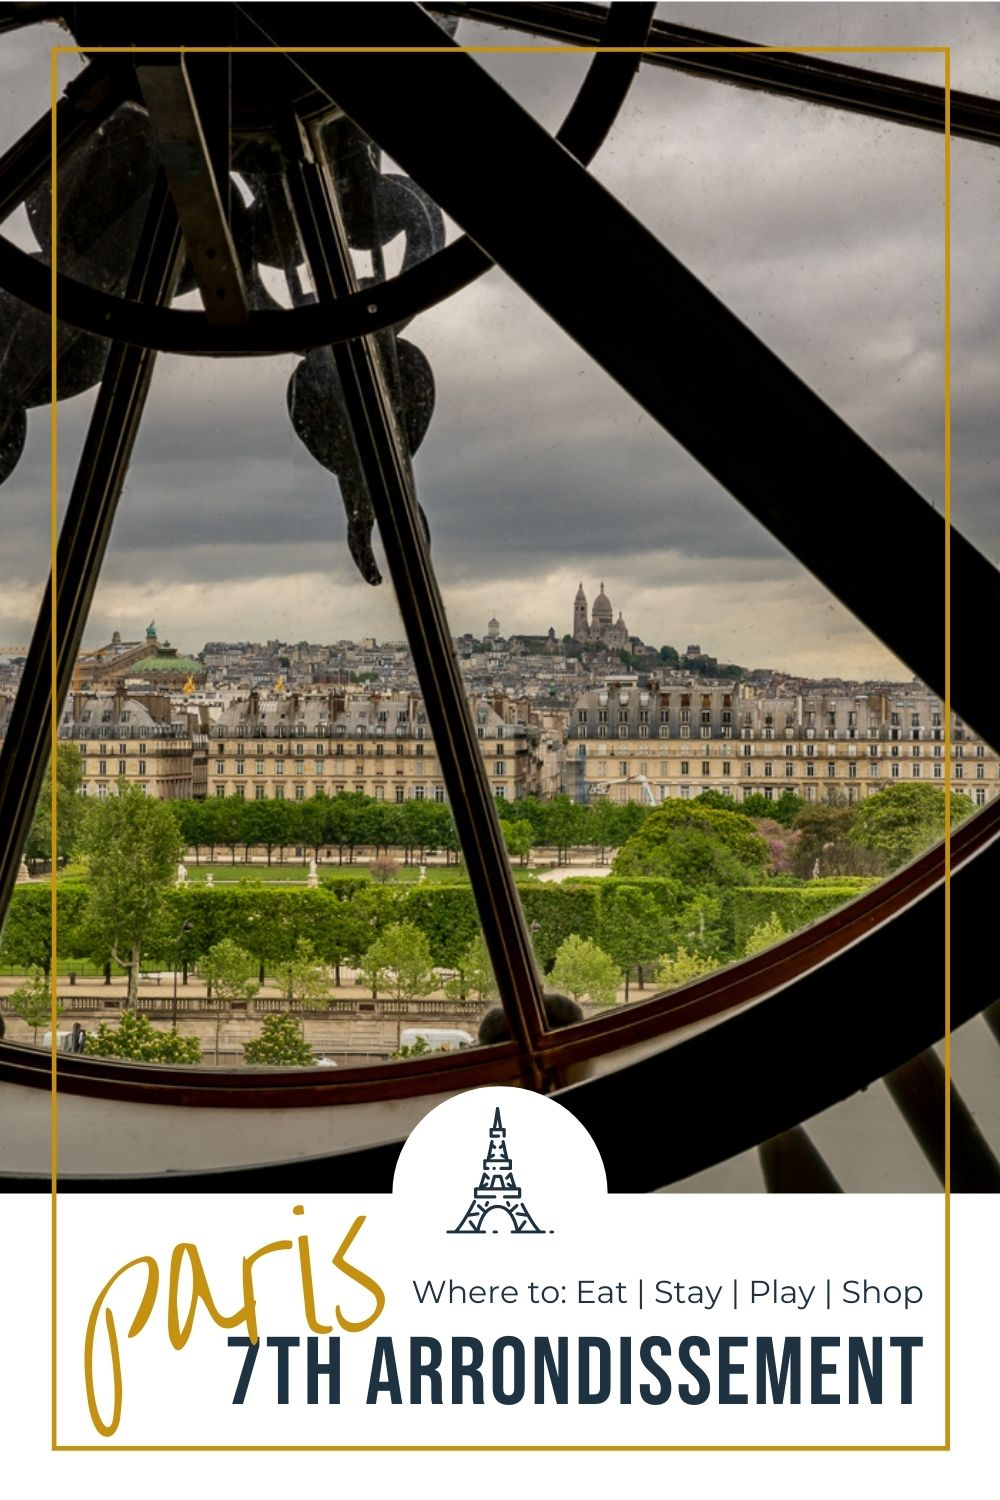 view of Paris from inside the Orsay museum